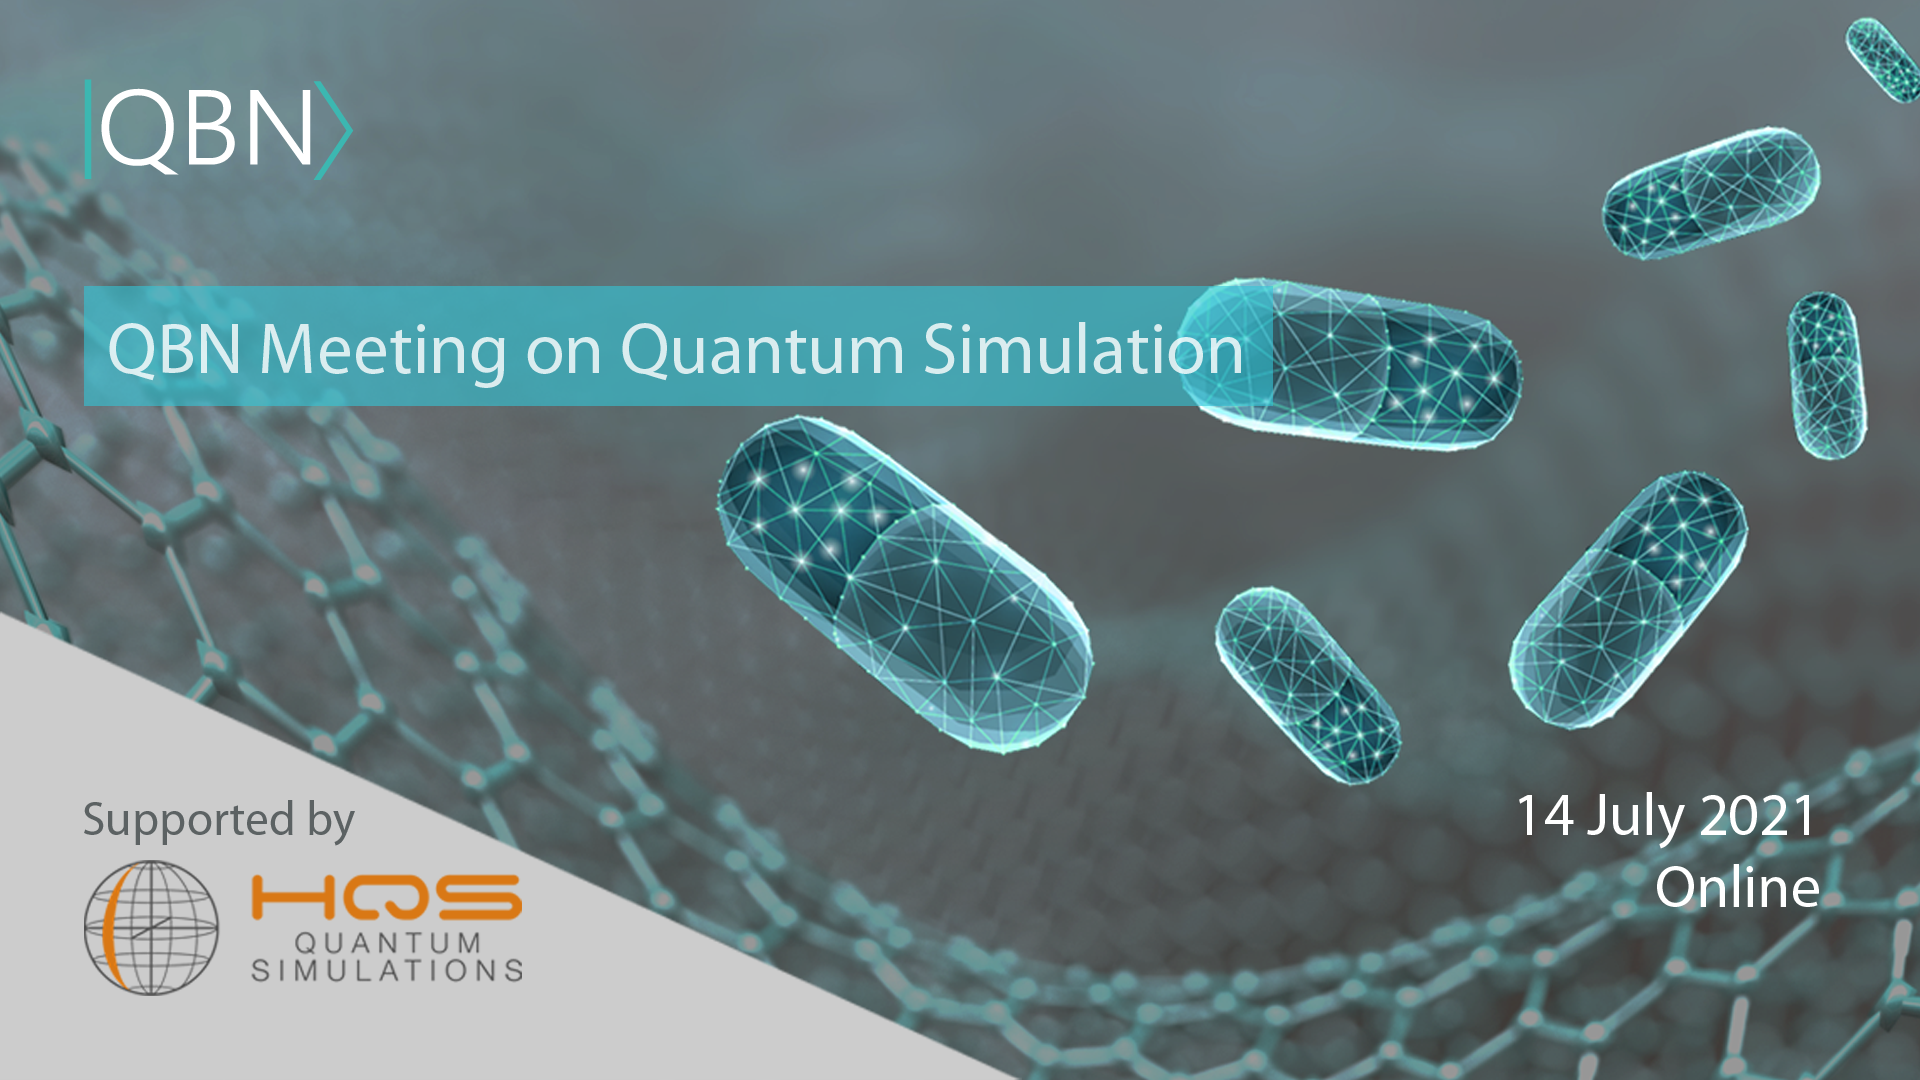 QBN Meeting on Quantum Simulation